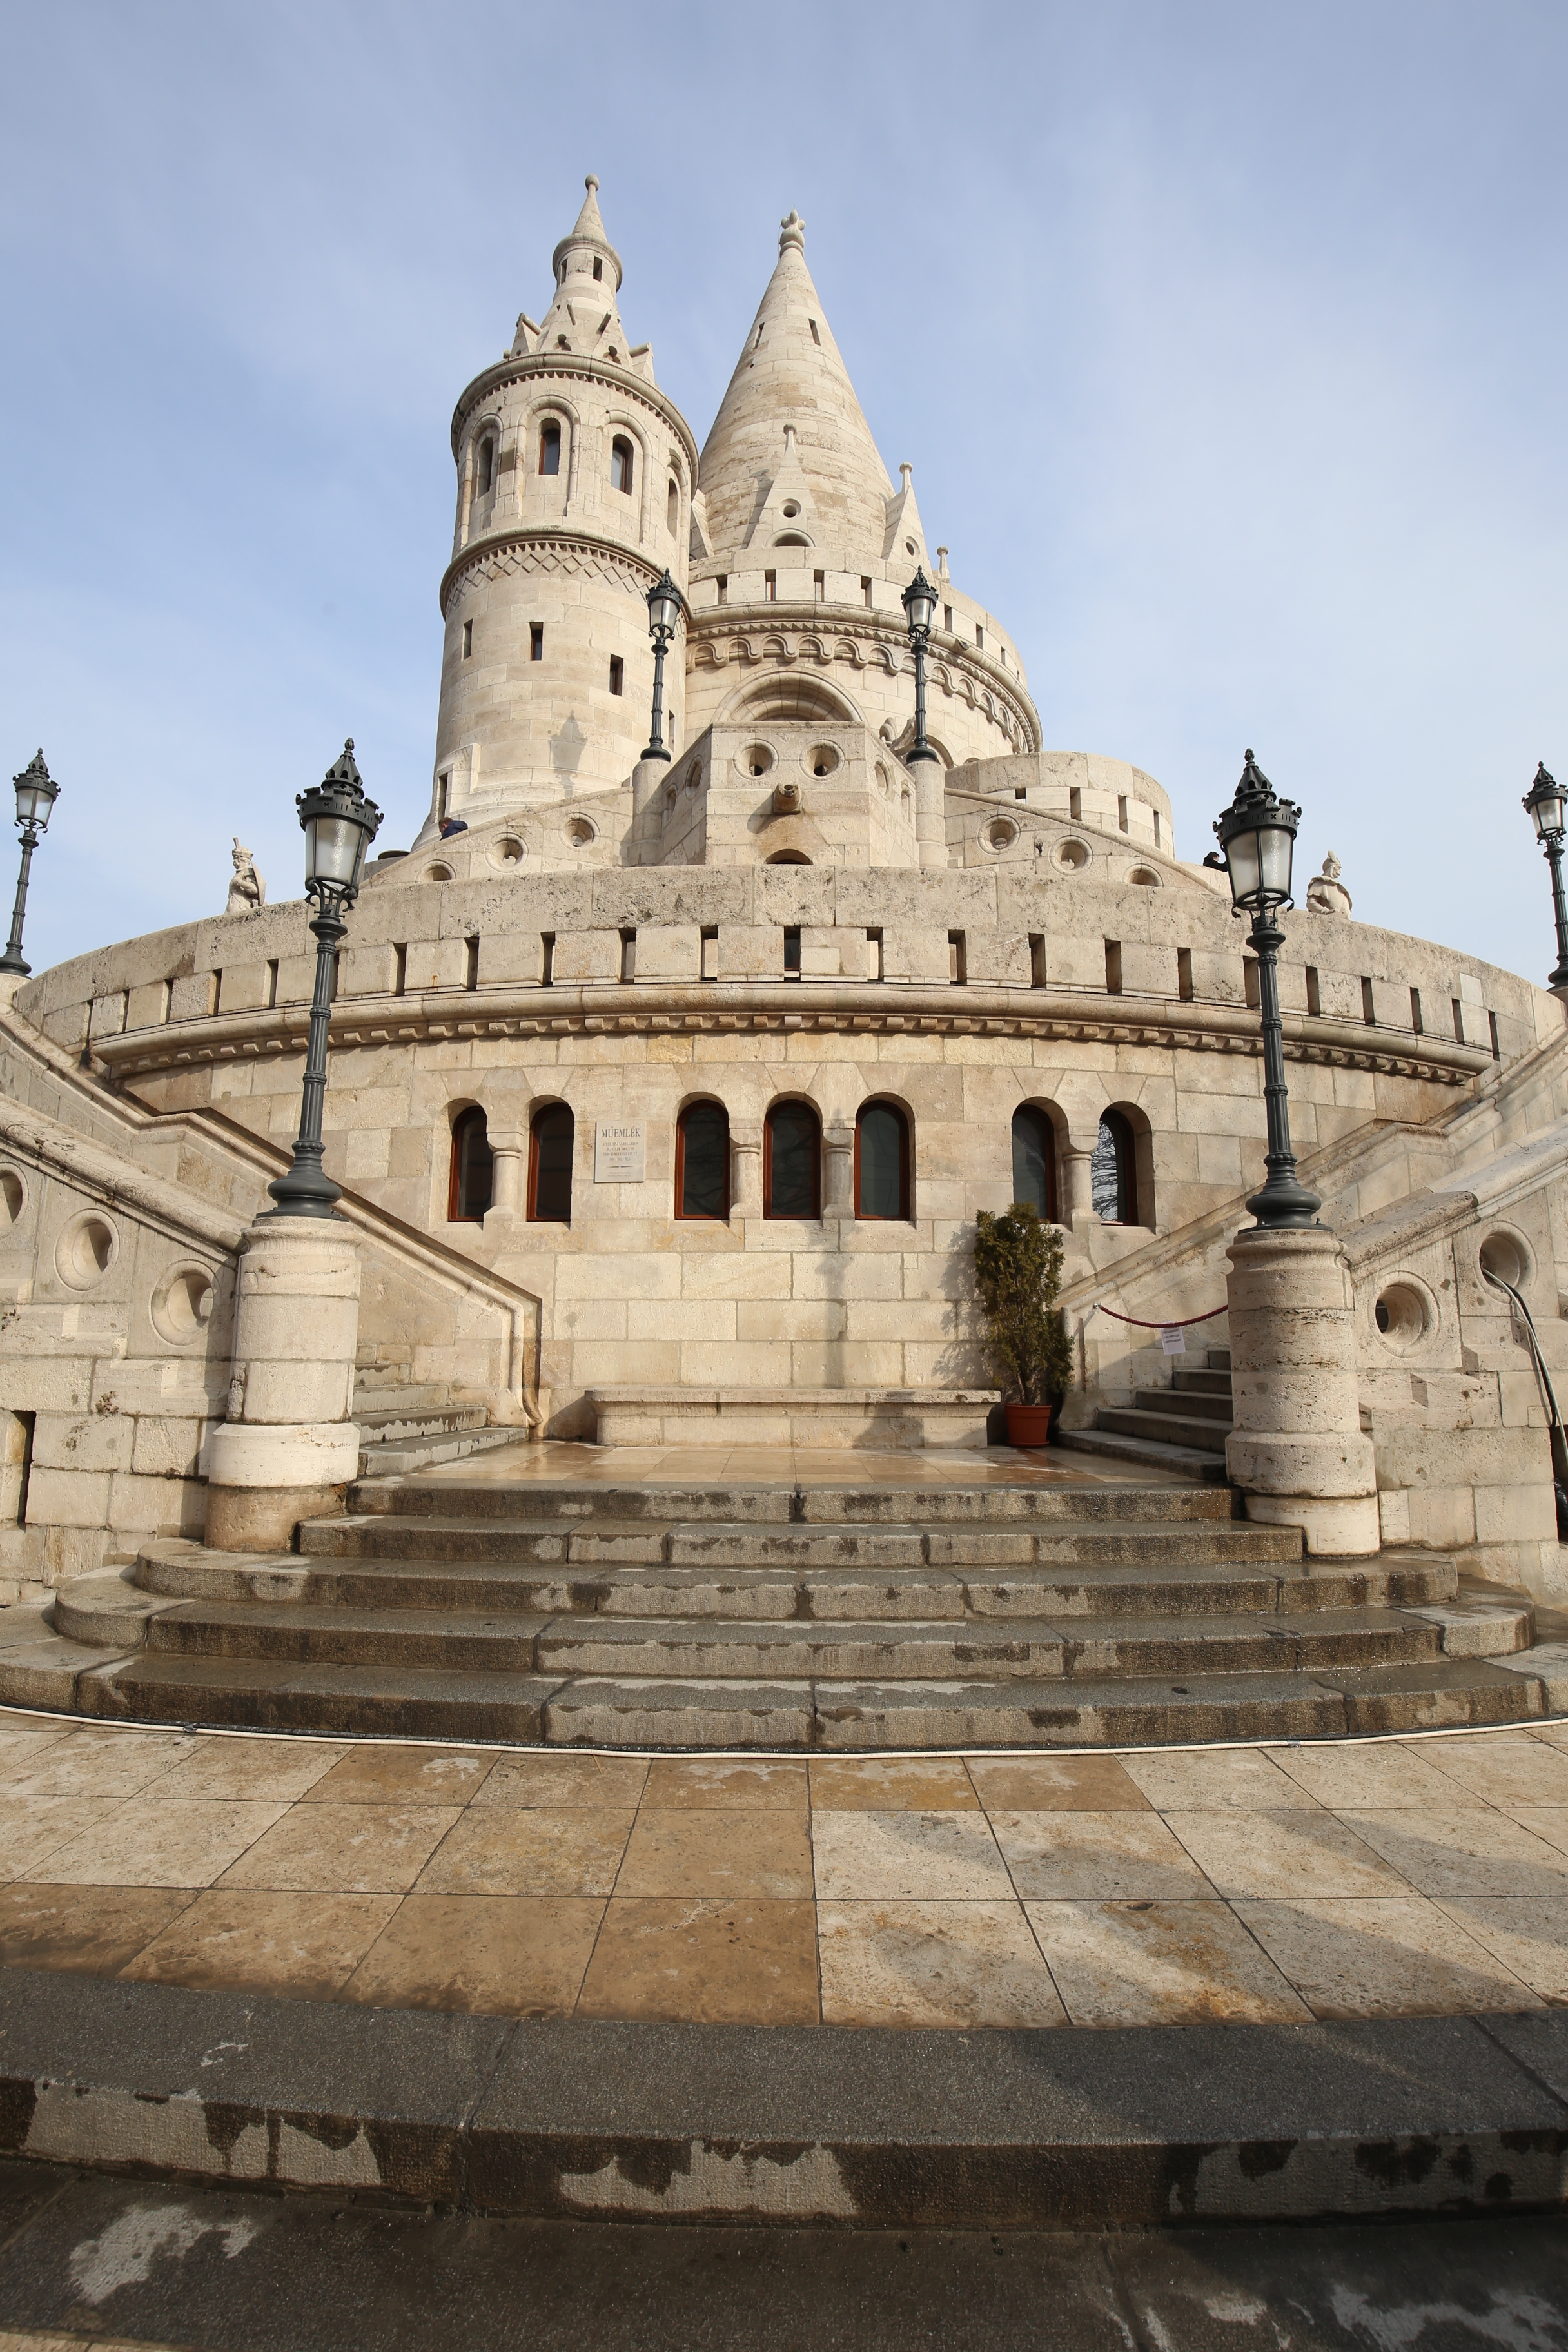 A real Disney castle - white turrets of the Fisherman's Bastion in Budapest.